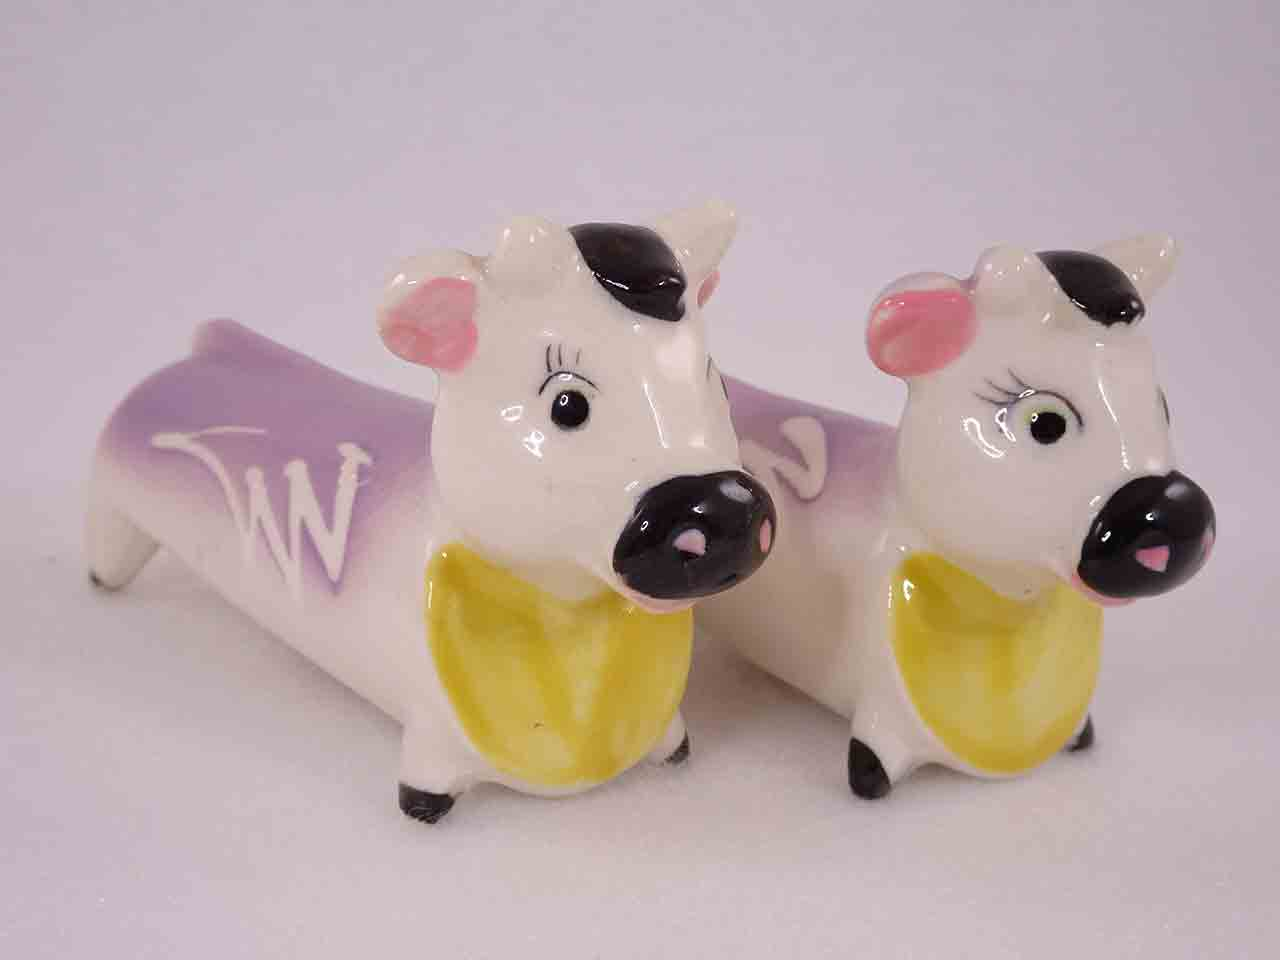 Longer Animals with White Squiggly Lines salt and pepper shakers - cows